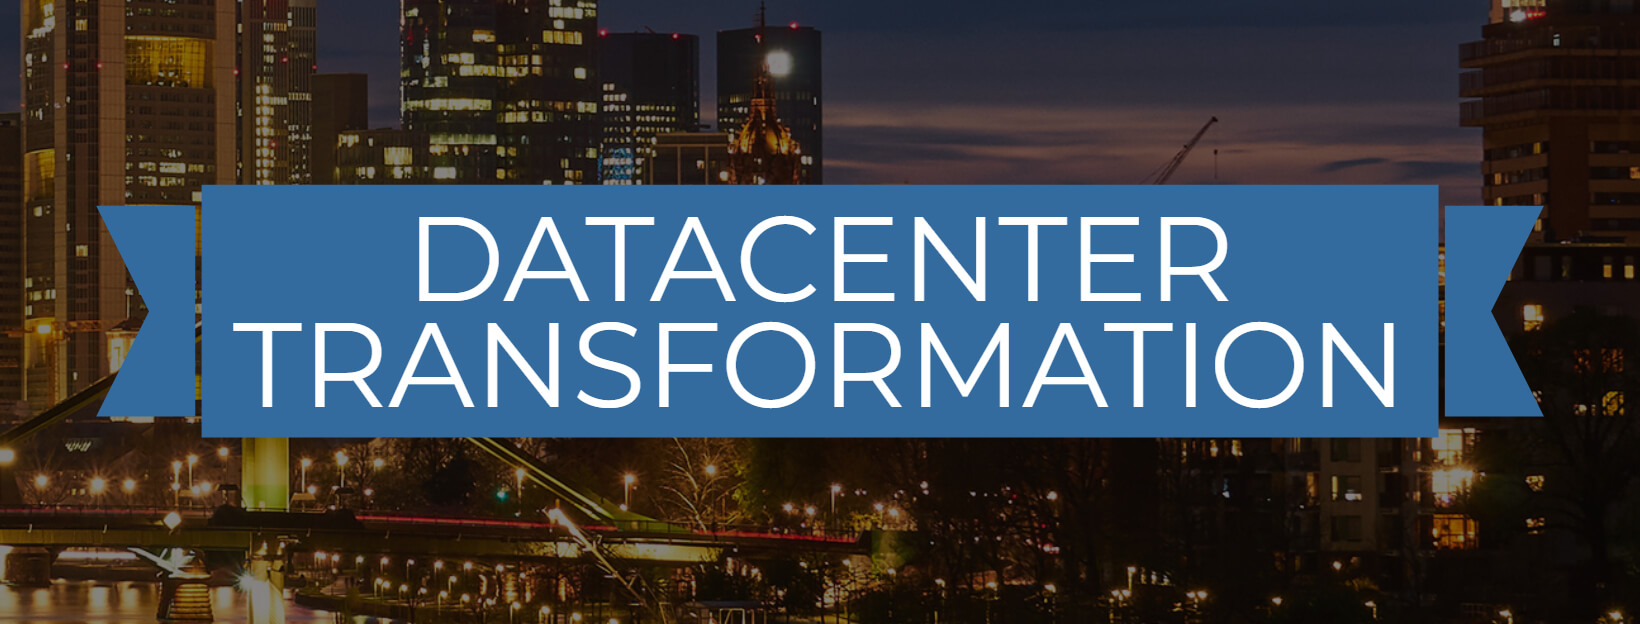 Back By Popular Demand! Datacenter Transformation 2017